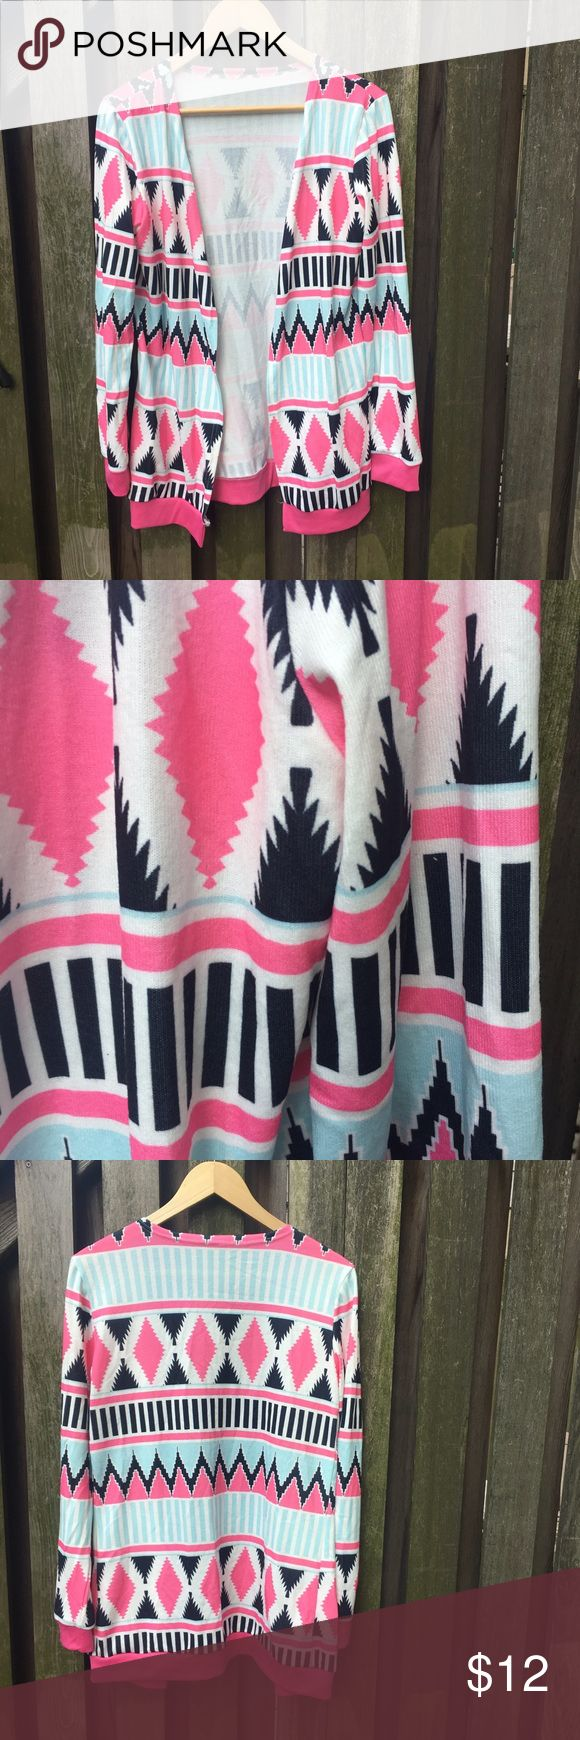 Pink and Blue Tribal Cardigan Baby Pink and Baby Blue Tribal Pattern with Thin Black Line Details | Cardigan has no buttons or closures | this is the perfect lightweight summer sweater | Super soft and comfy | NWOT | Size M Sweaters Cardigans